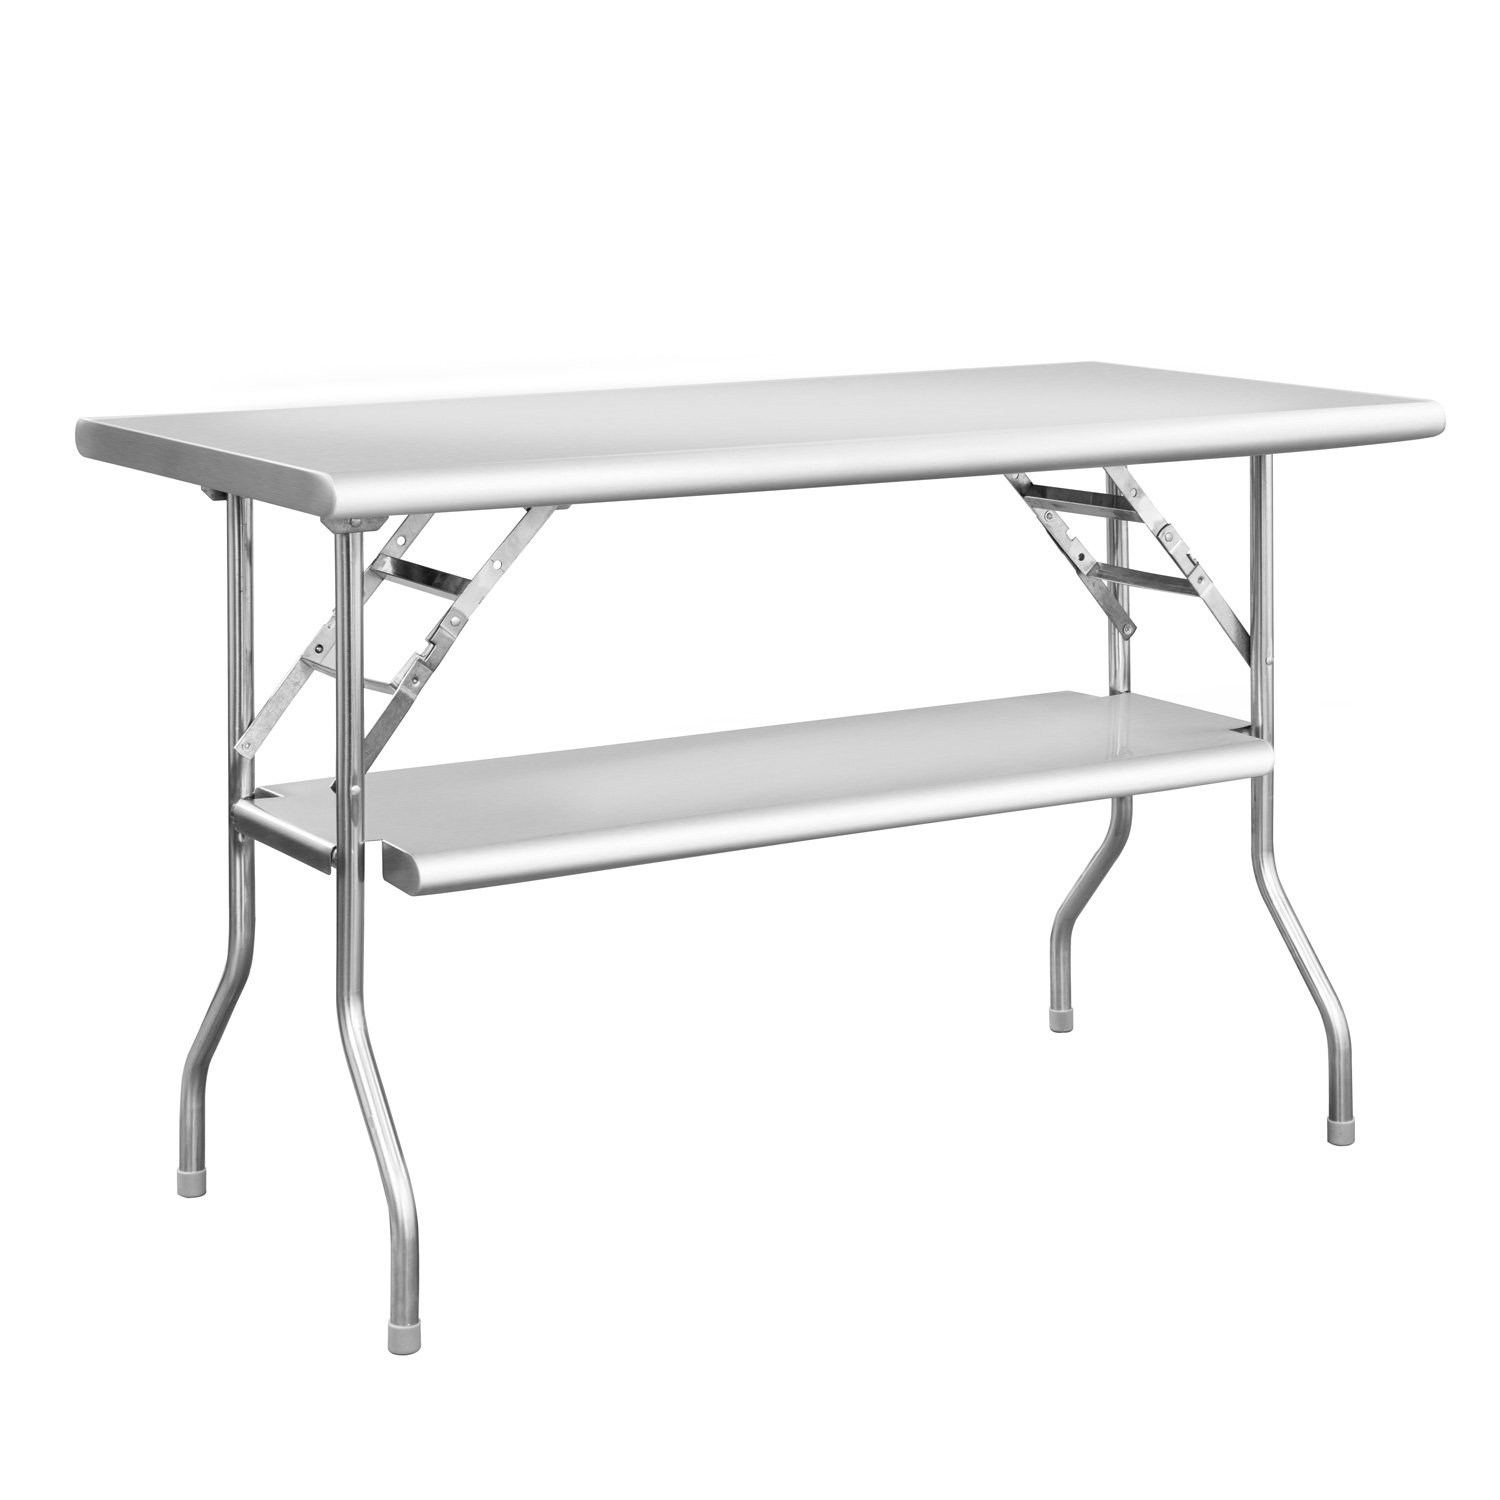 Royal Gourmet Commercial Stainless Steel Double-Shelf Folding Work Table, 48'' L x 24'' W